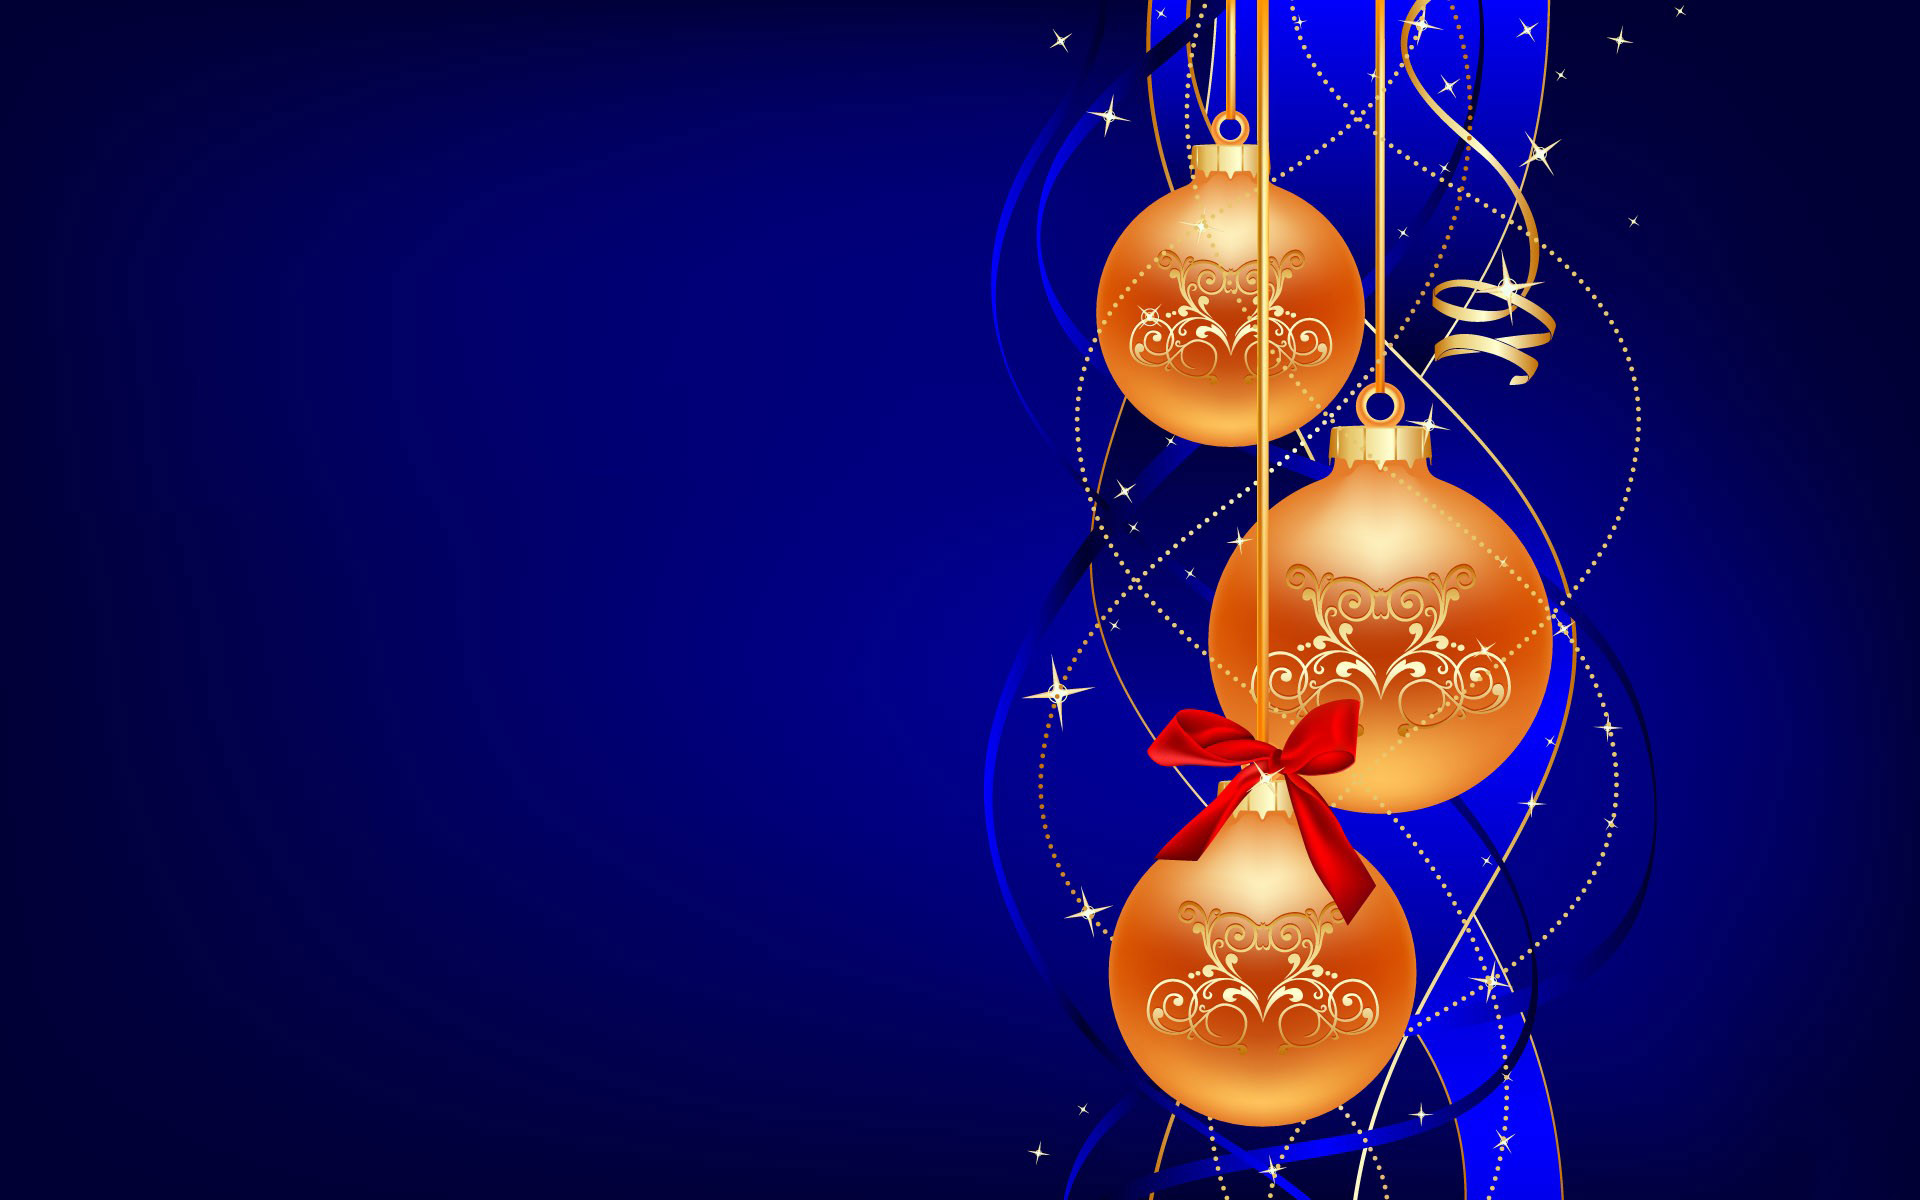 Merry Christmas Wallpaper Gallery Yopriceville   High Quality 1920x1200